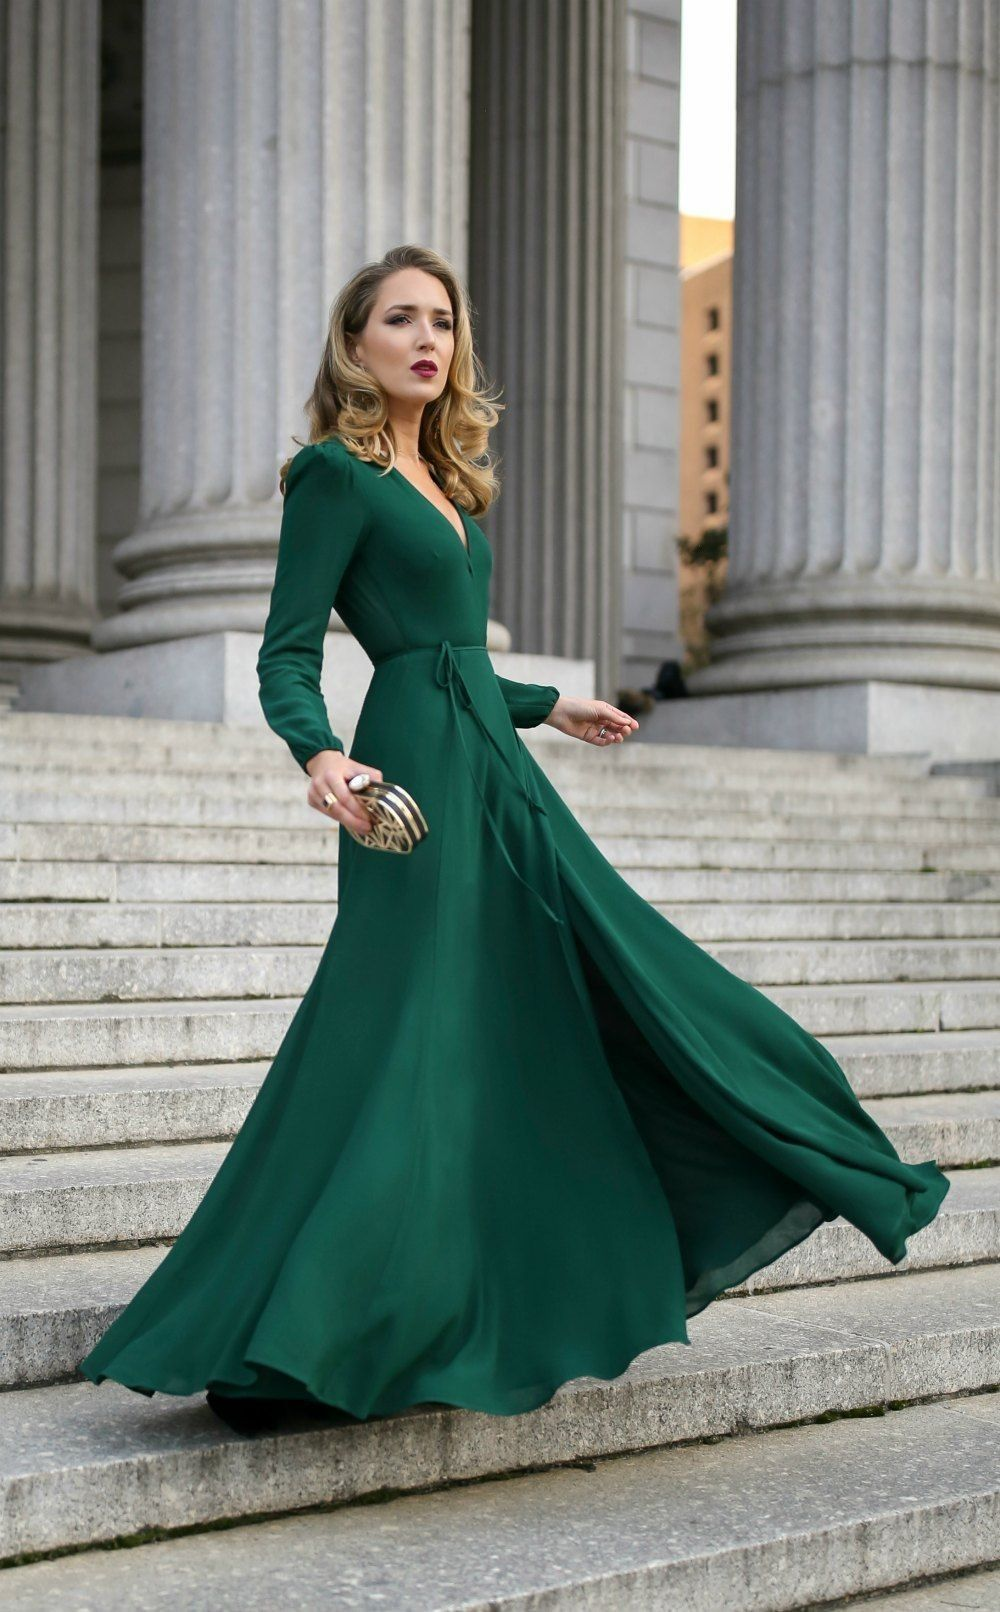 Pin By Sadery Garcia Sabater On Shades Of Green Maxi Dress With Sleeves Trendy Dresses Nice Dresses [ 1612 x 1000 Pixel ]